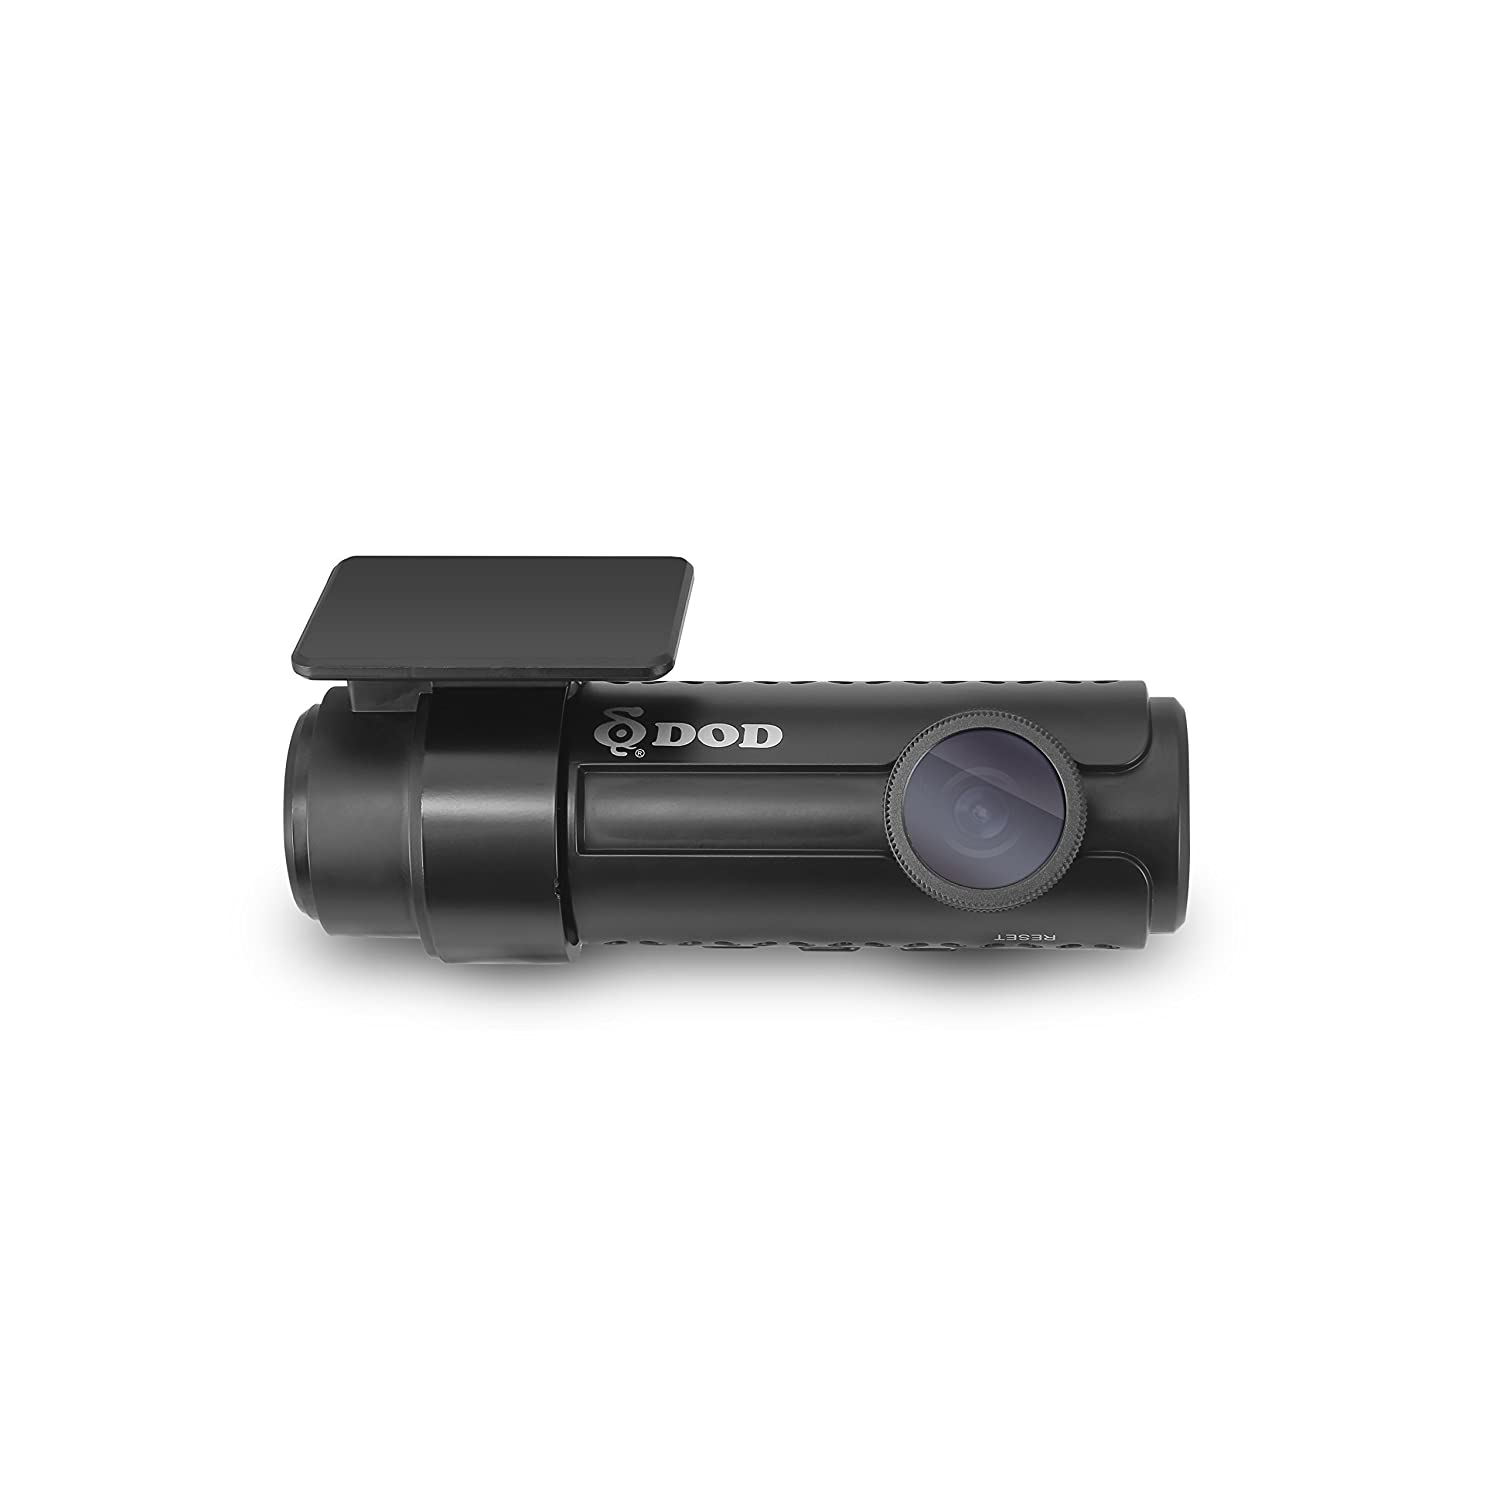 DOD RC500S 1-Channel 1080P Dash Cam, Build-in Wi-Fi and 10Hz GPS, Sony Starvis Sensor, Super Night Vision, Parking Surveillance, up to 128GB Memory, Free 16GB SD Card Included